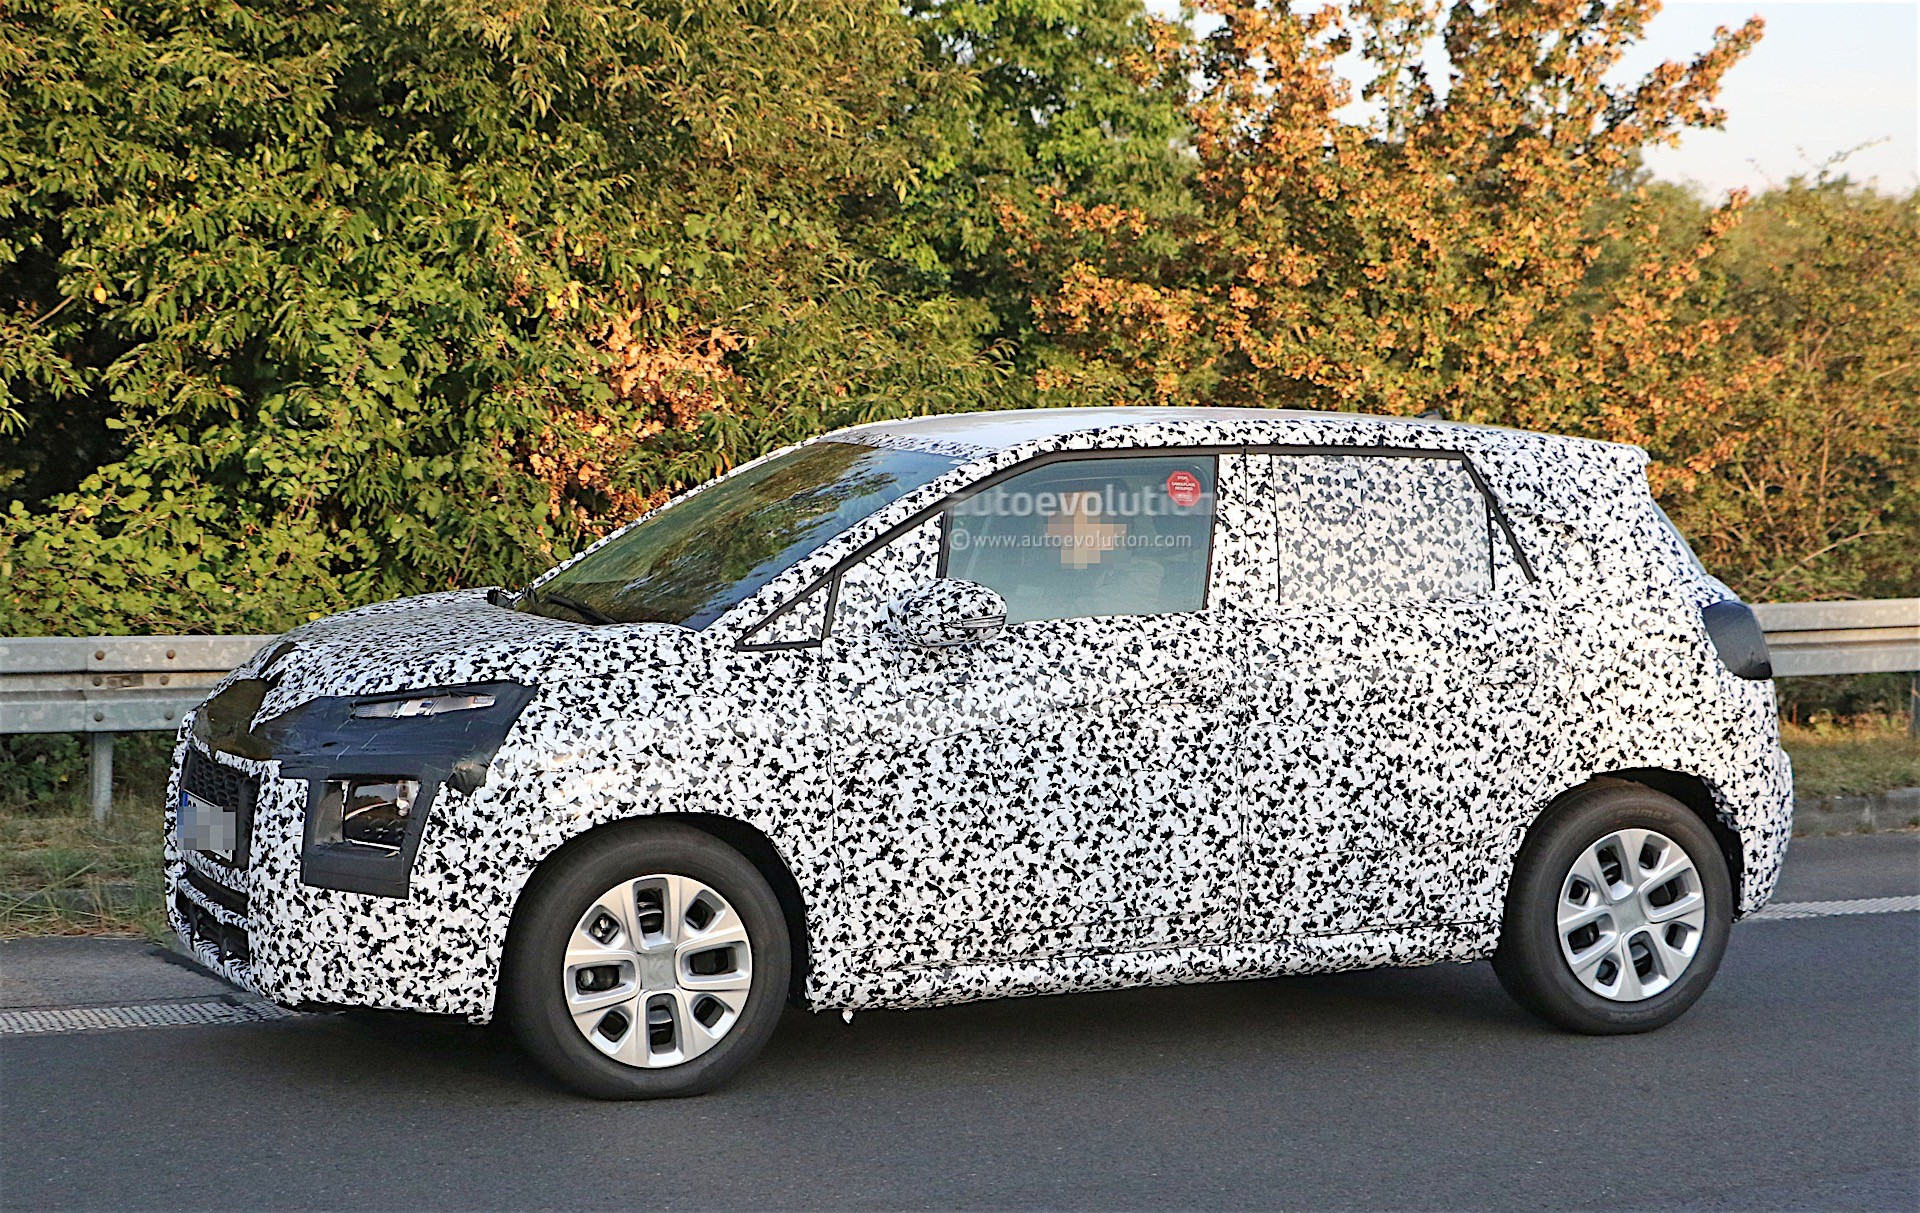 2017 citroen c3 picasso spied again front end gets partially revealed autoevolution. Black Bedroom Furniture Sets. Home Design Ideas